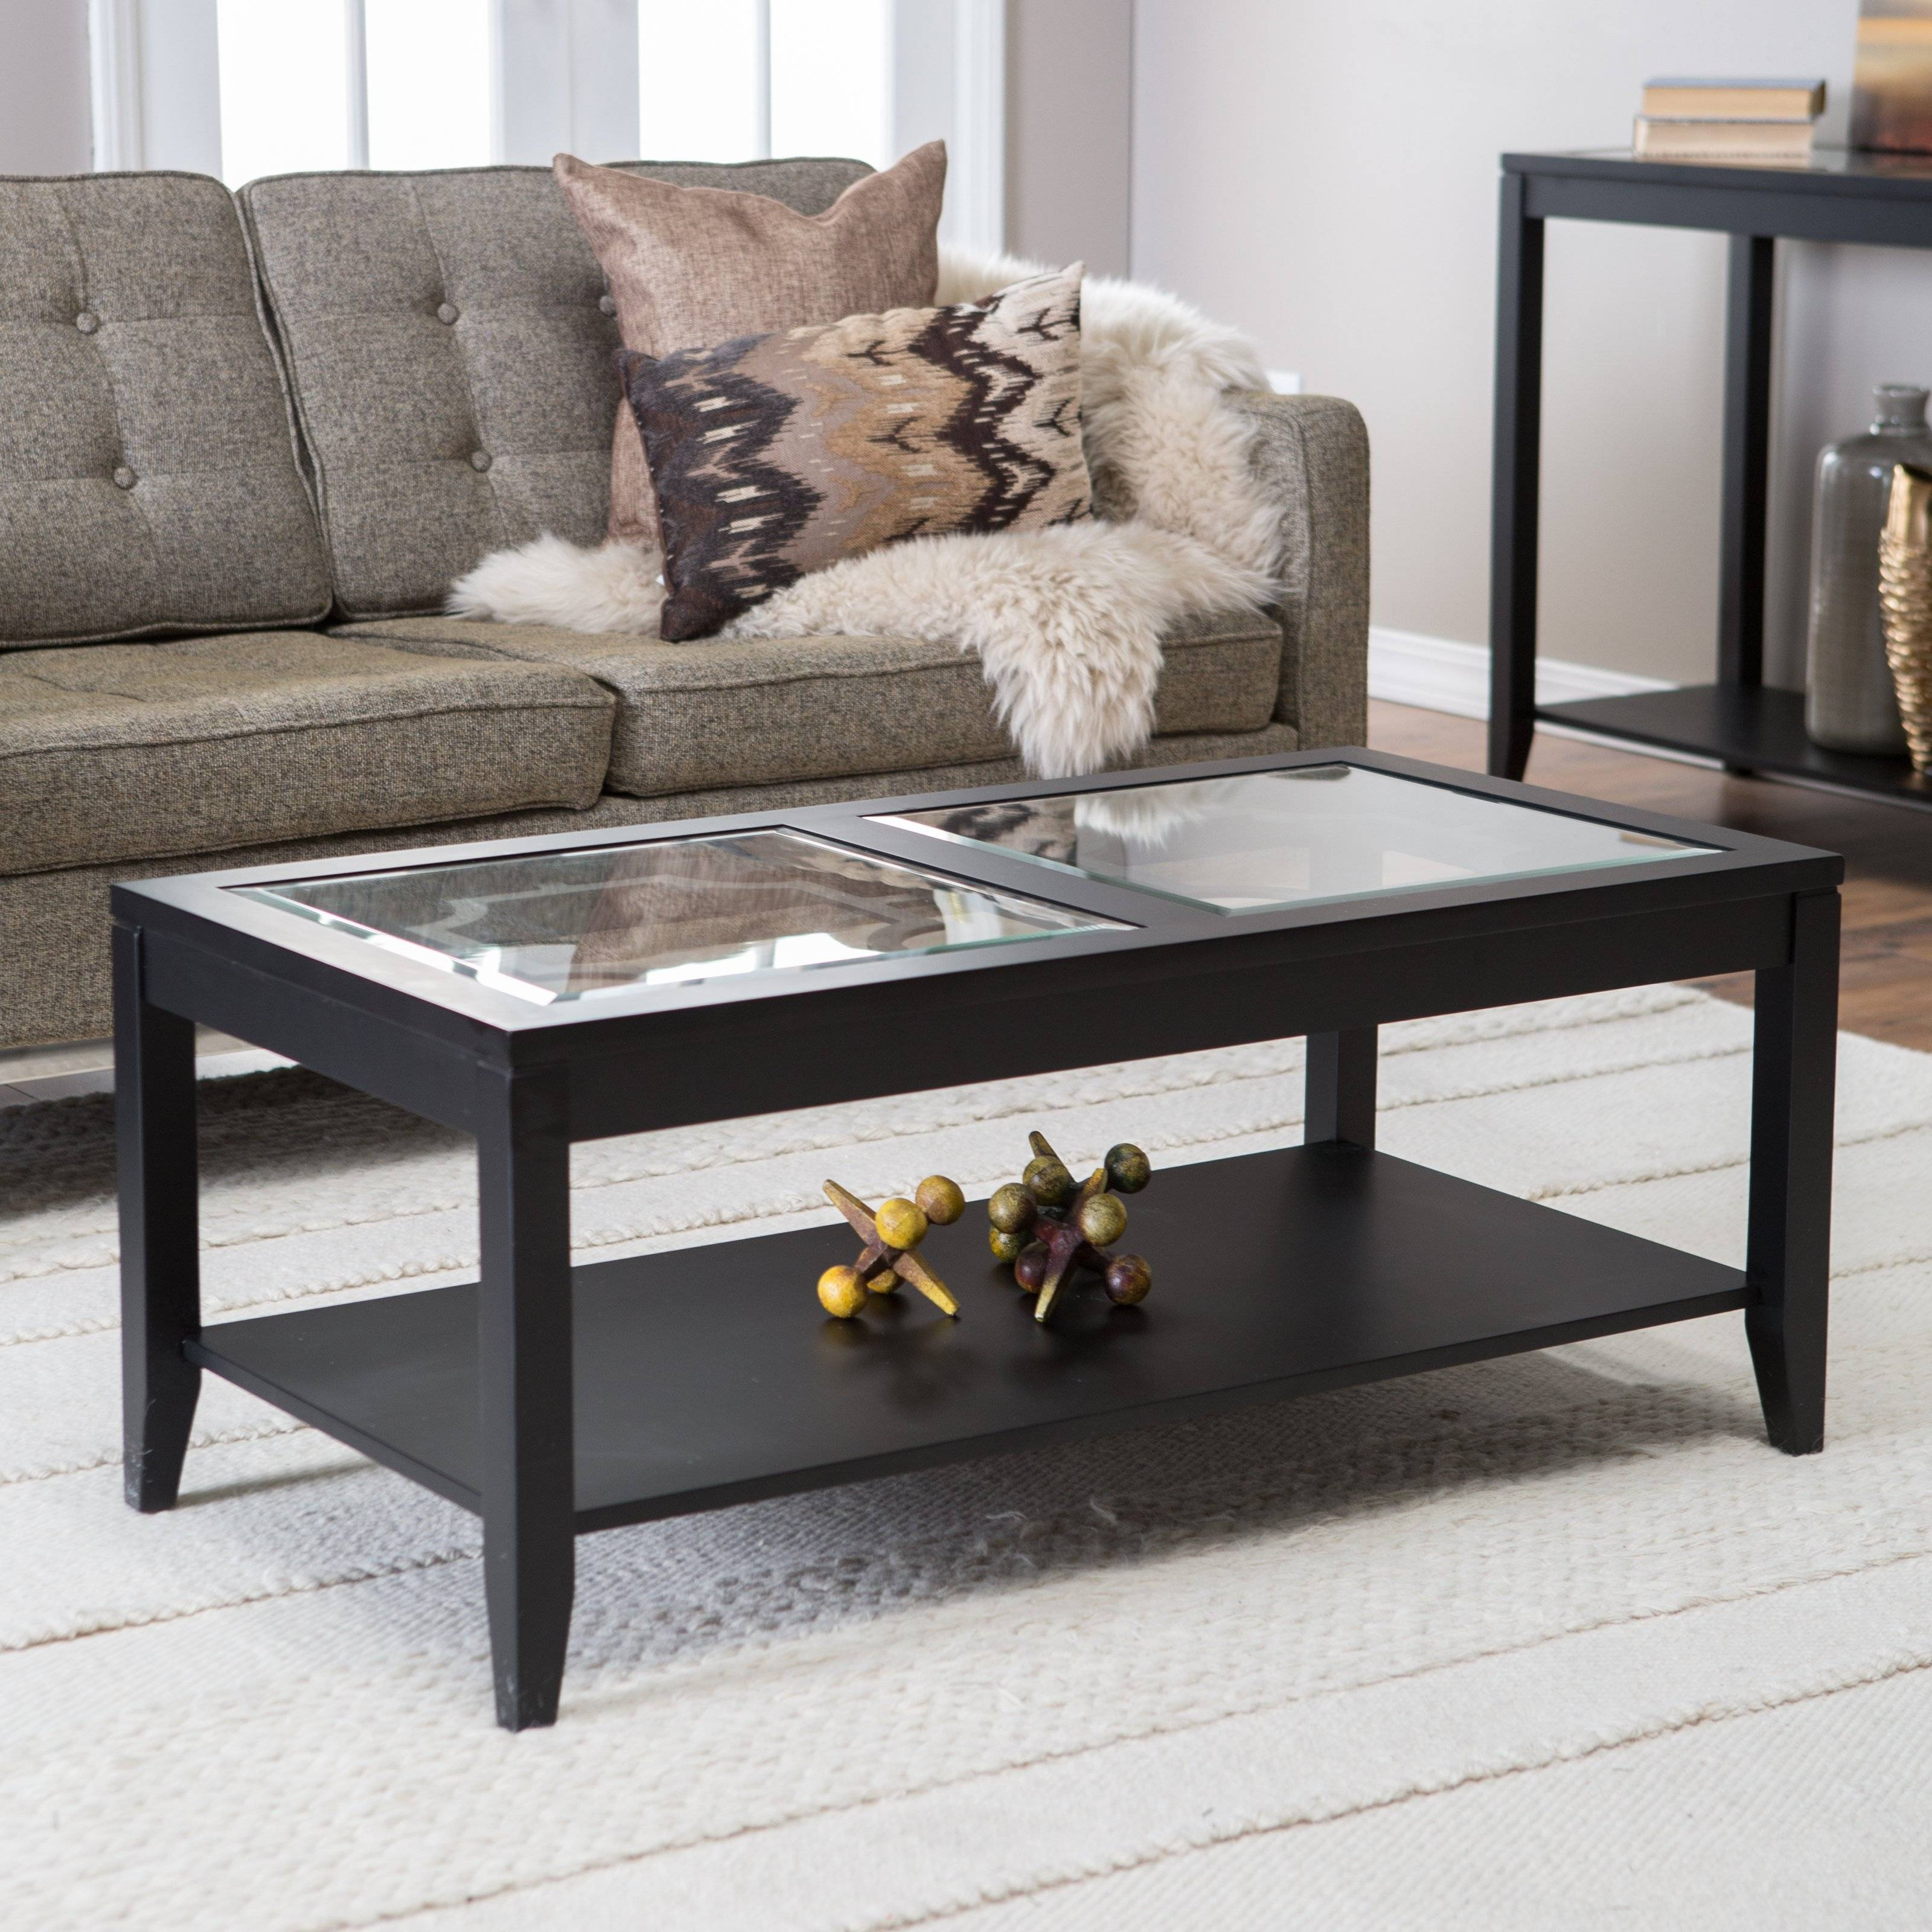 Hodedah Glass Rectangle Coffee Table, Black - Walmart intended for Rectangular Coffee Tables (Image 11 of 15)